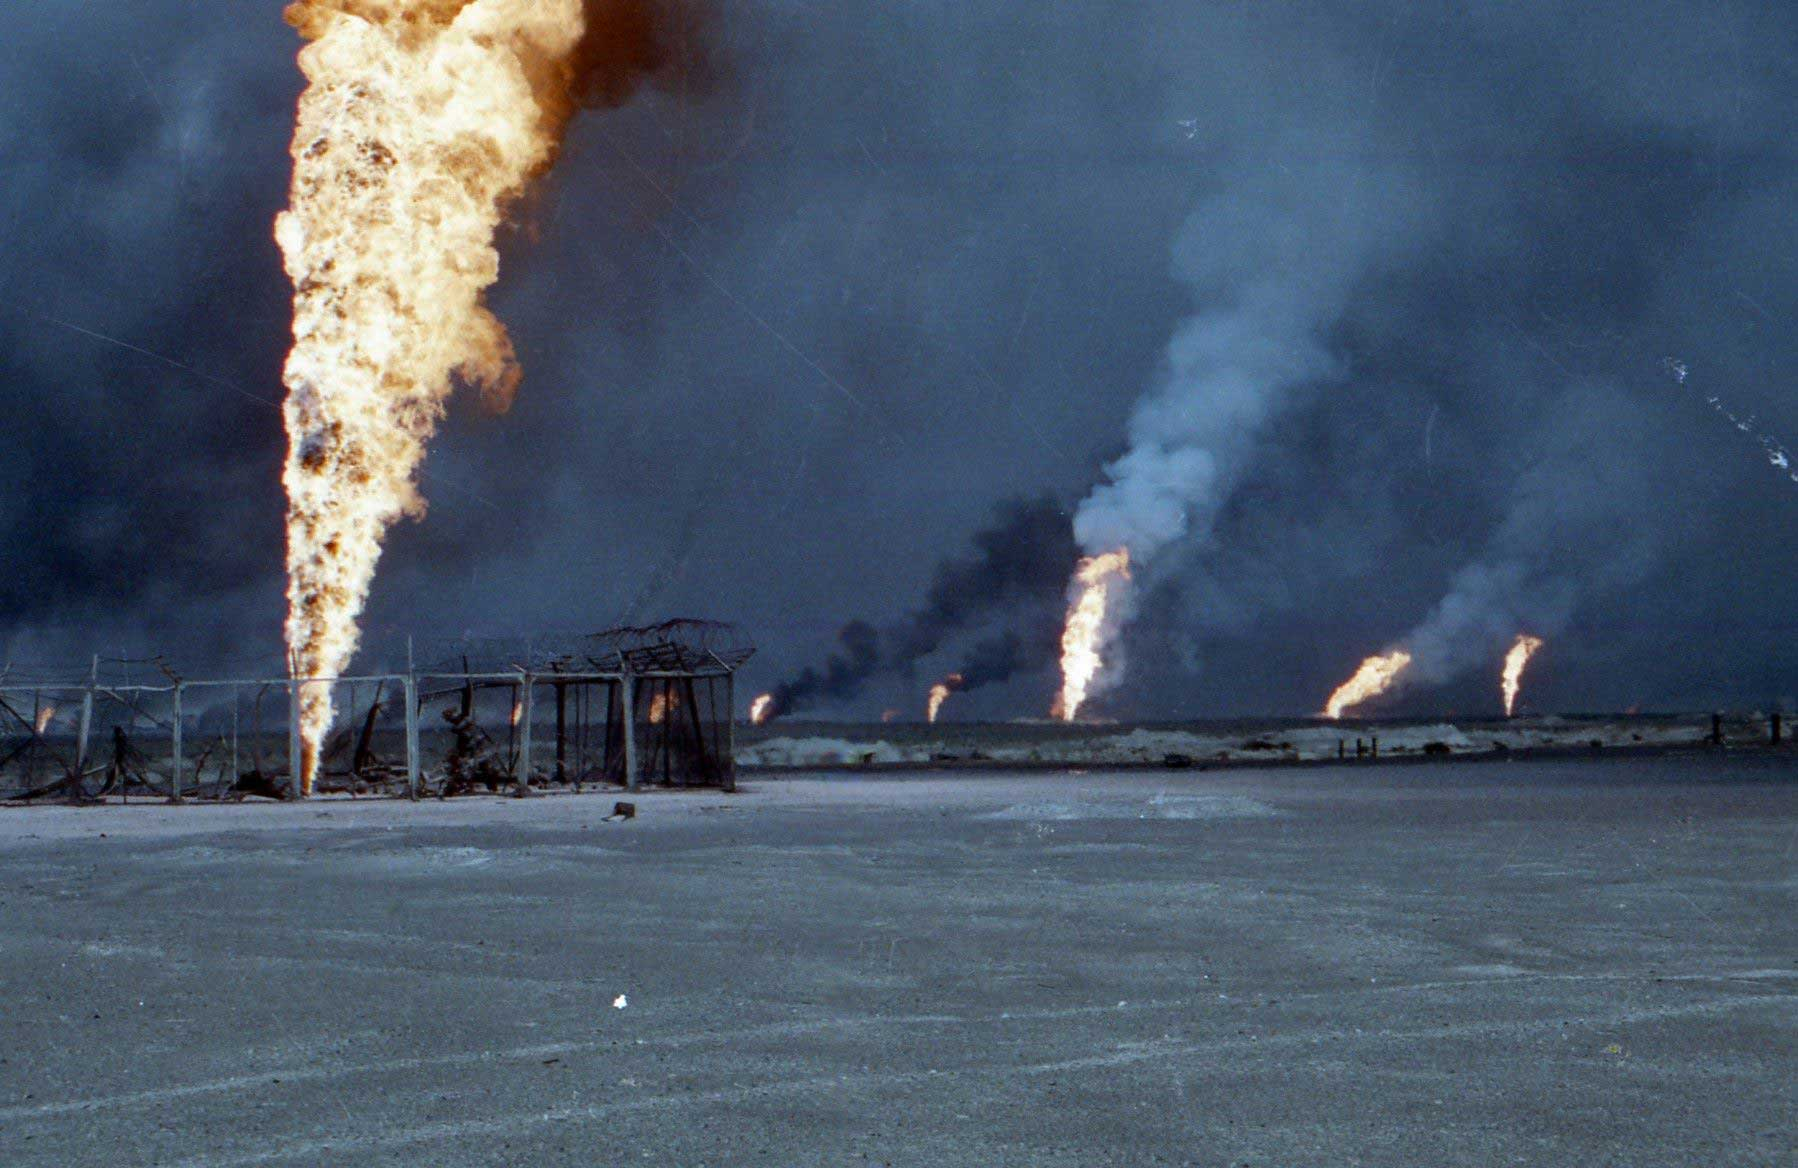 Oil wells in Kuwait fill the midday sky with smoke. Iraqi President Saddam Hussein's troops lit 650 wells on fire as they retreated, causing a crisis as Kuwait worked for nine months to put them out.